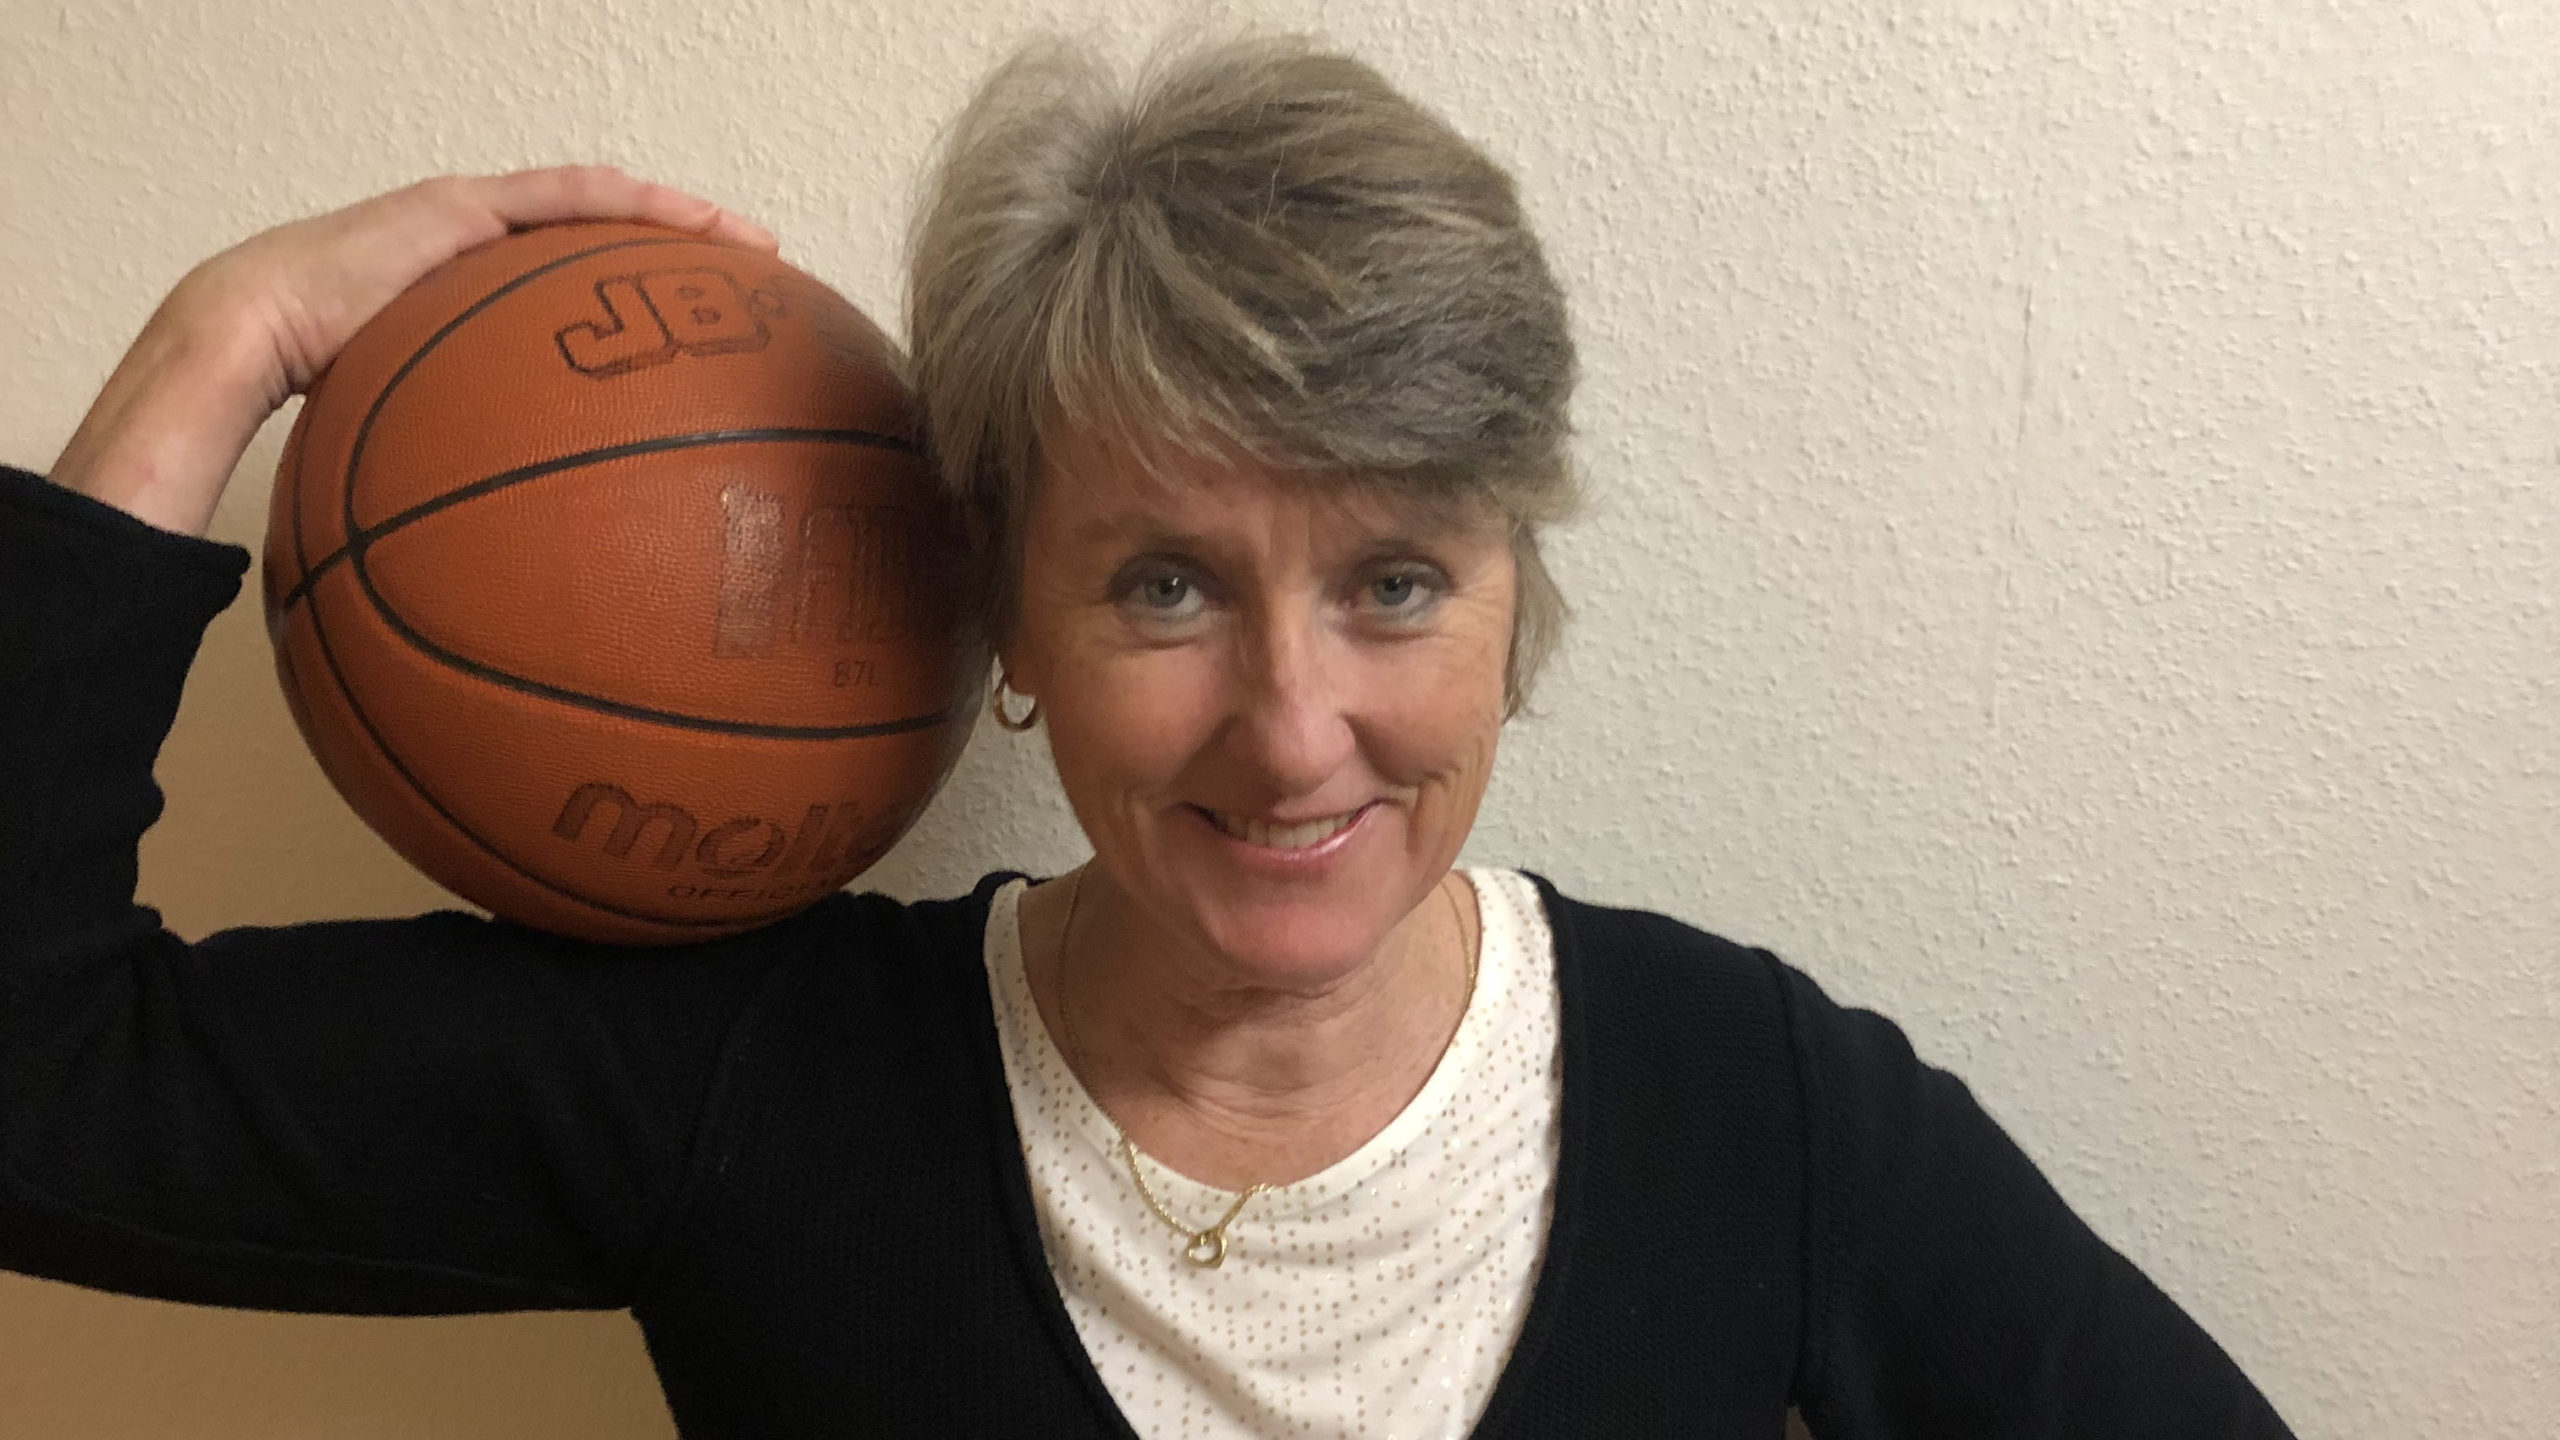 Anna Stammberger has been coaching basketball at Dalhousie for 12 years.